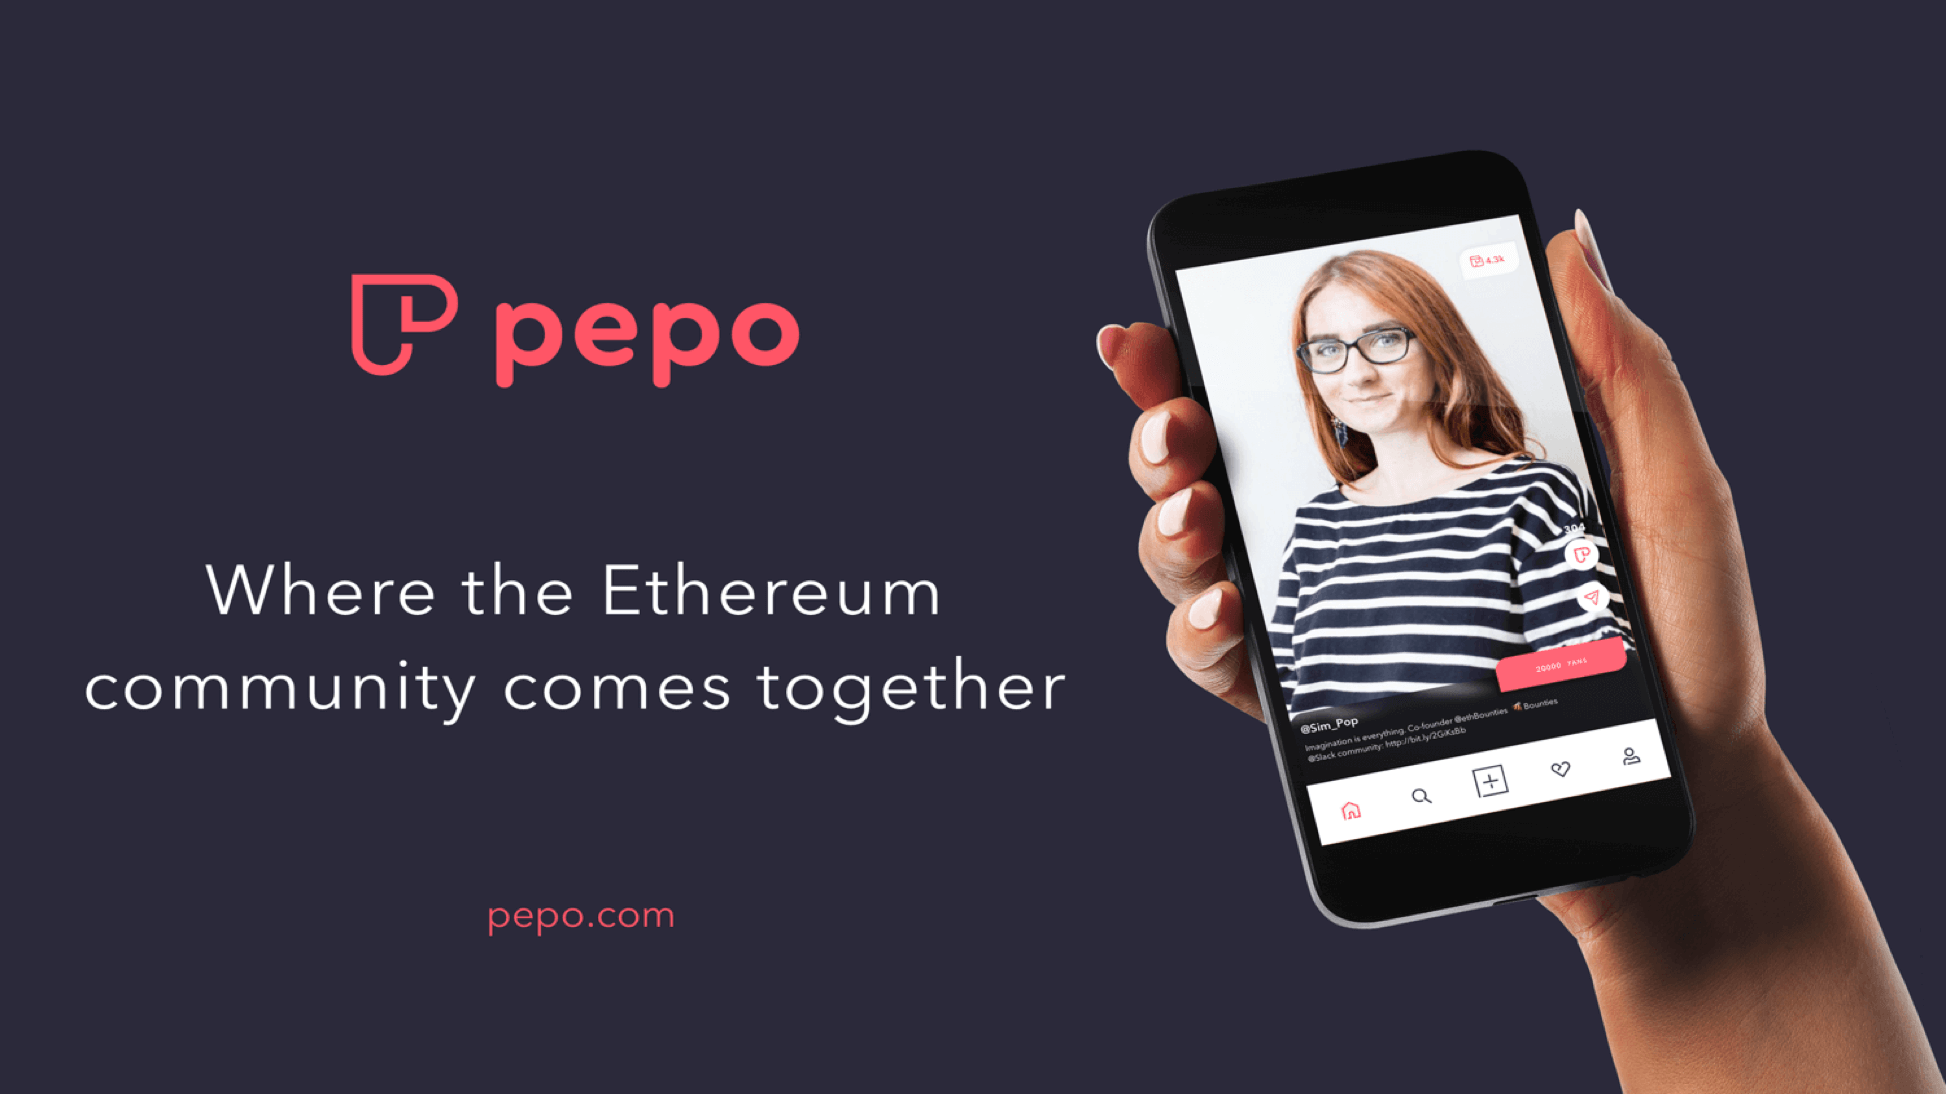 Introducing Pepo: The New Social App Connecting the Crypto Community